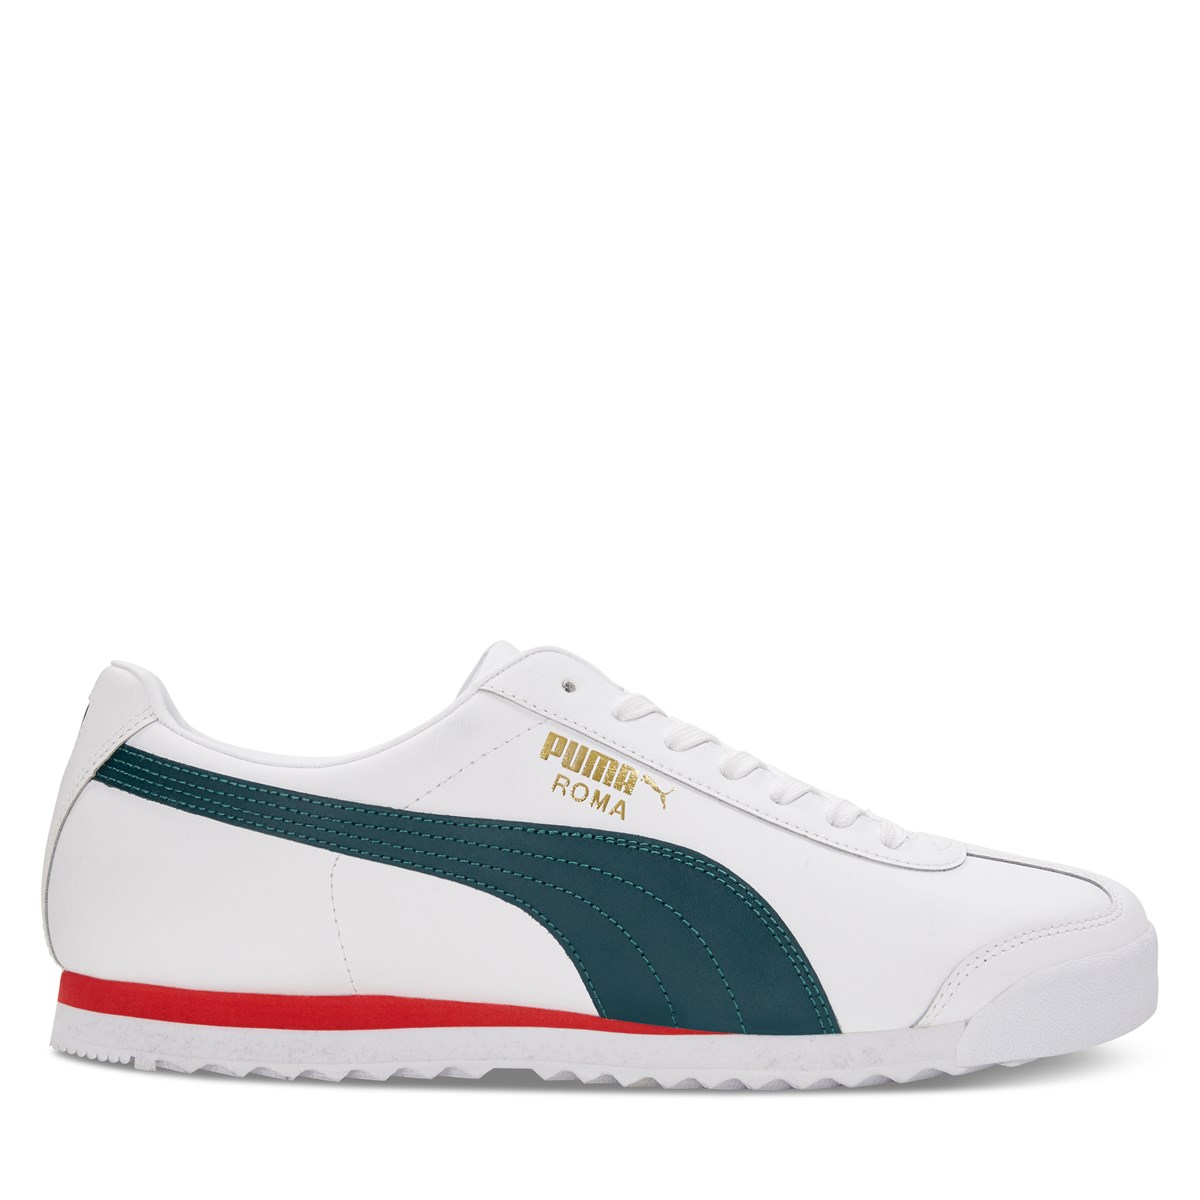 Roma Basic Sneakers in White